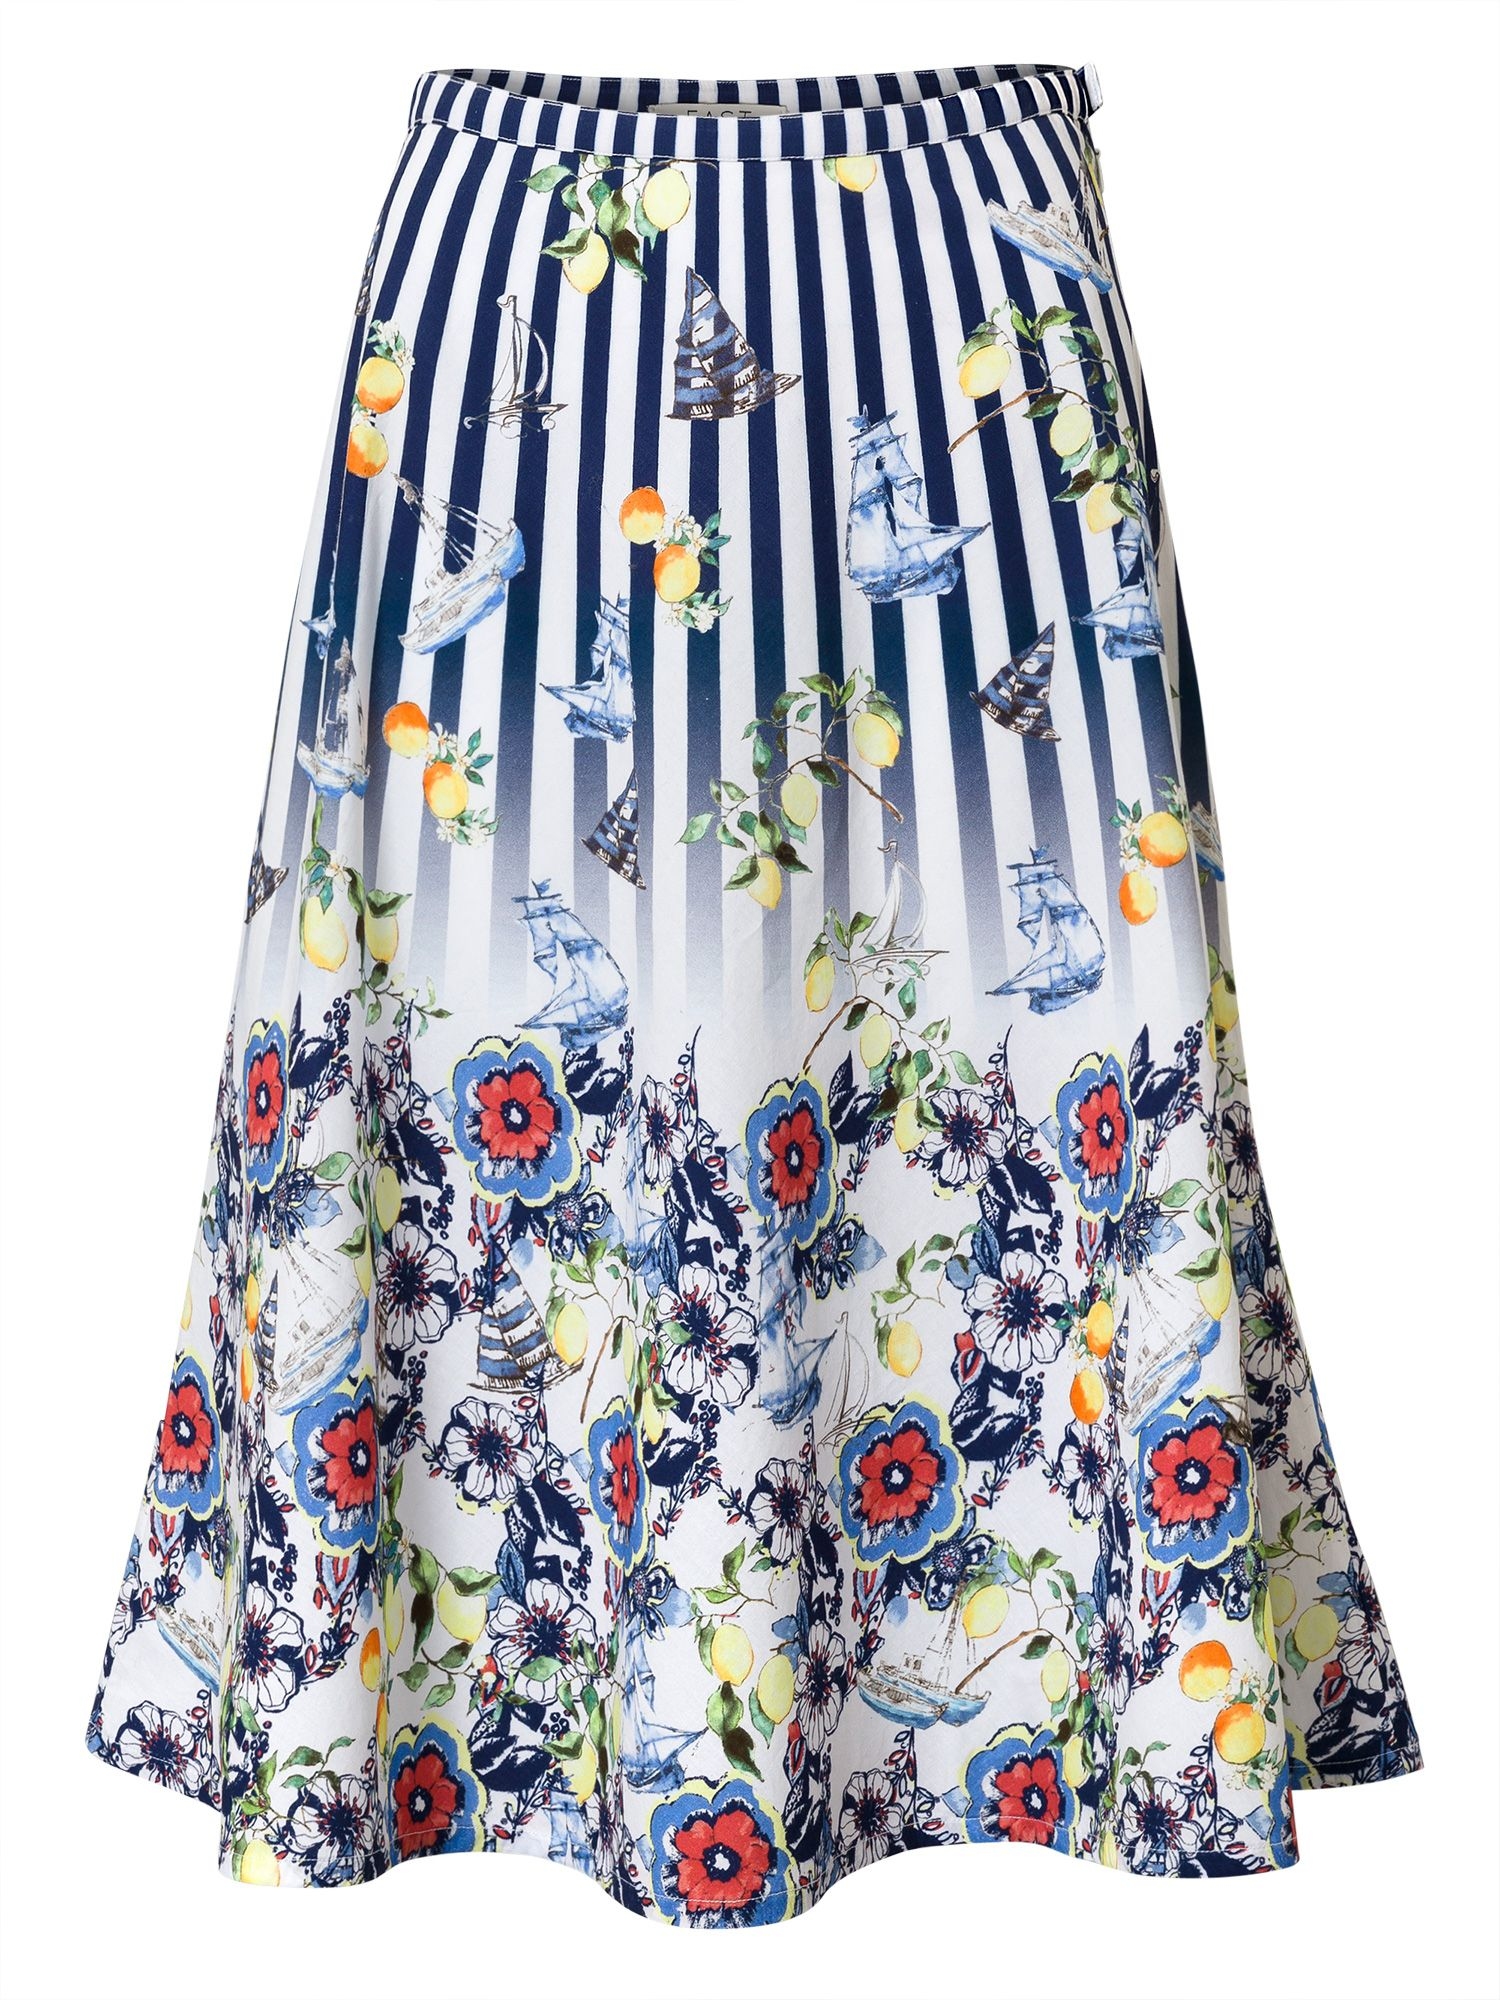 East Fabiola Print Skirt, Blue